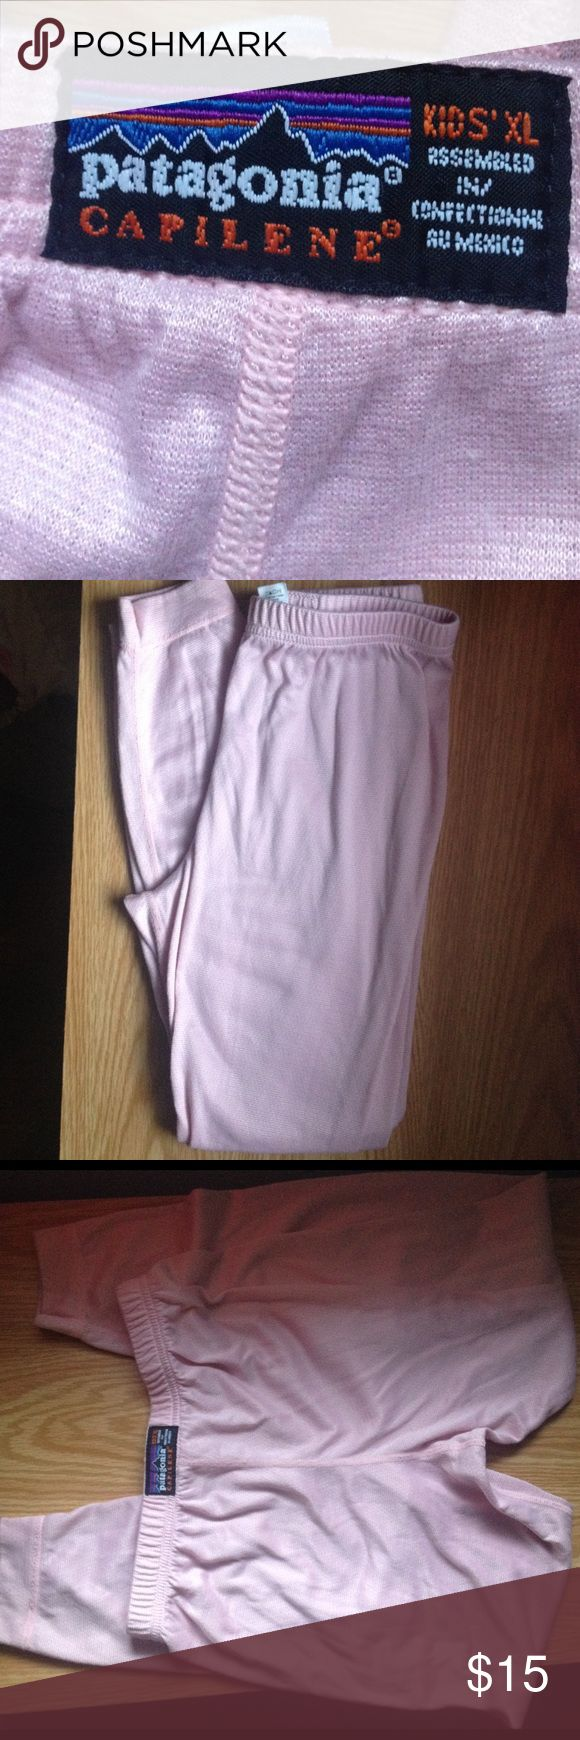 Patagonia Kids Capilene pants Patagonia Capilene pants are a base layer pants (think long johns) for kids to wear under their snow pants or under their jeans on a cold day. These are light pink with a bit of sheen in the right light. In good gently used condition. Size XL (14) Patagonia Bottoms